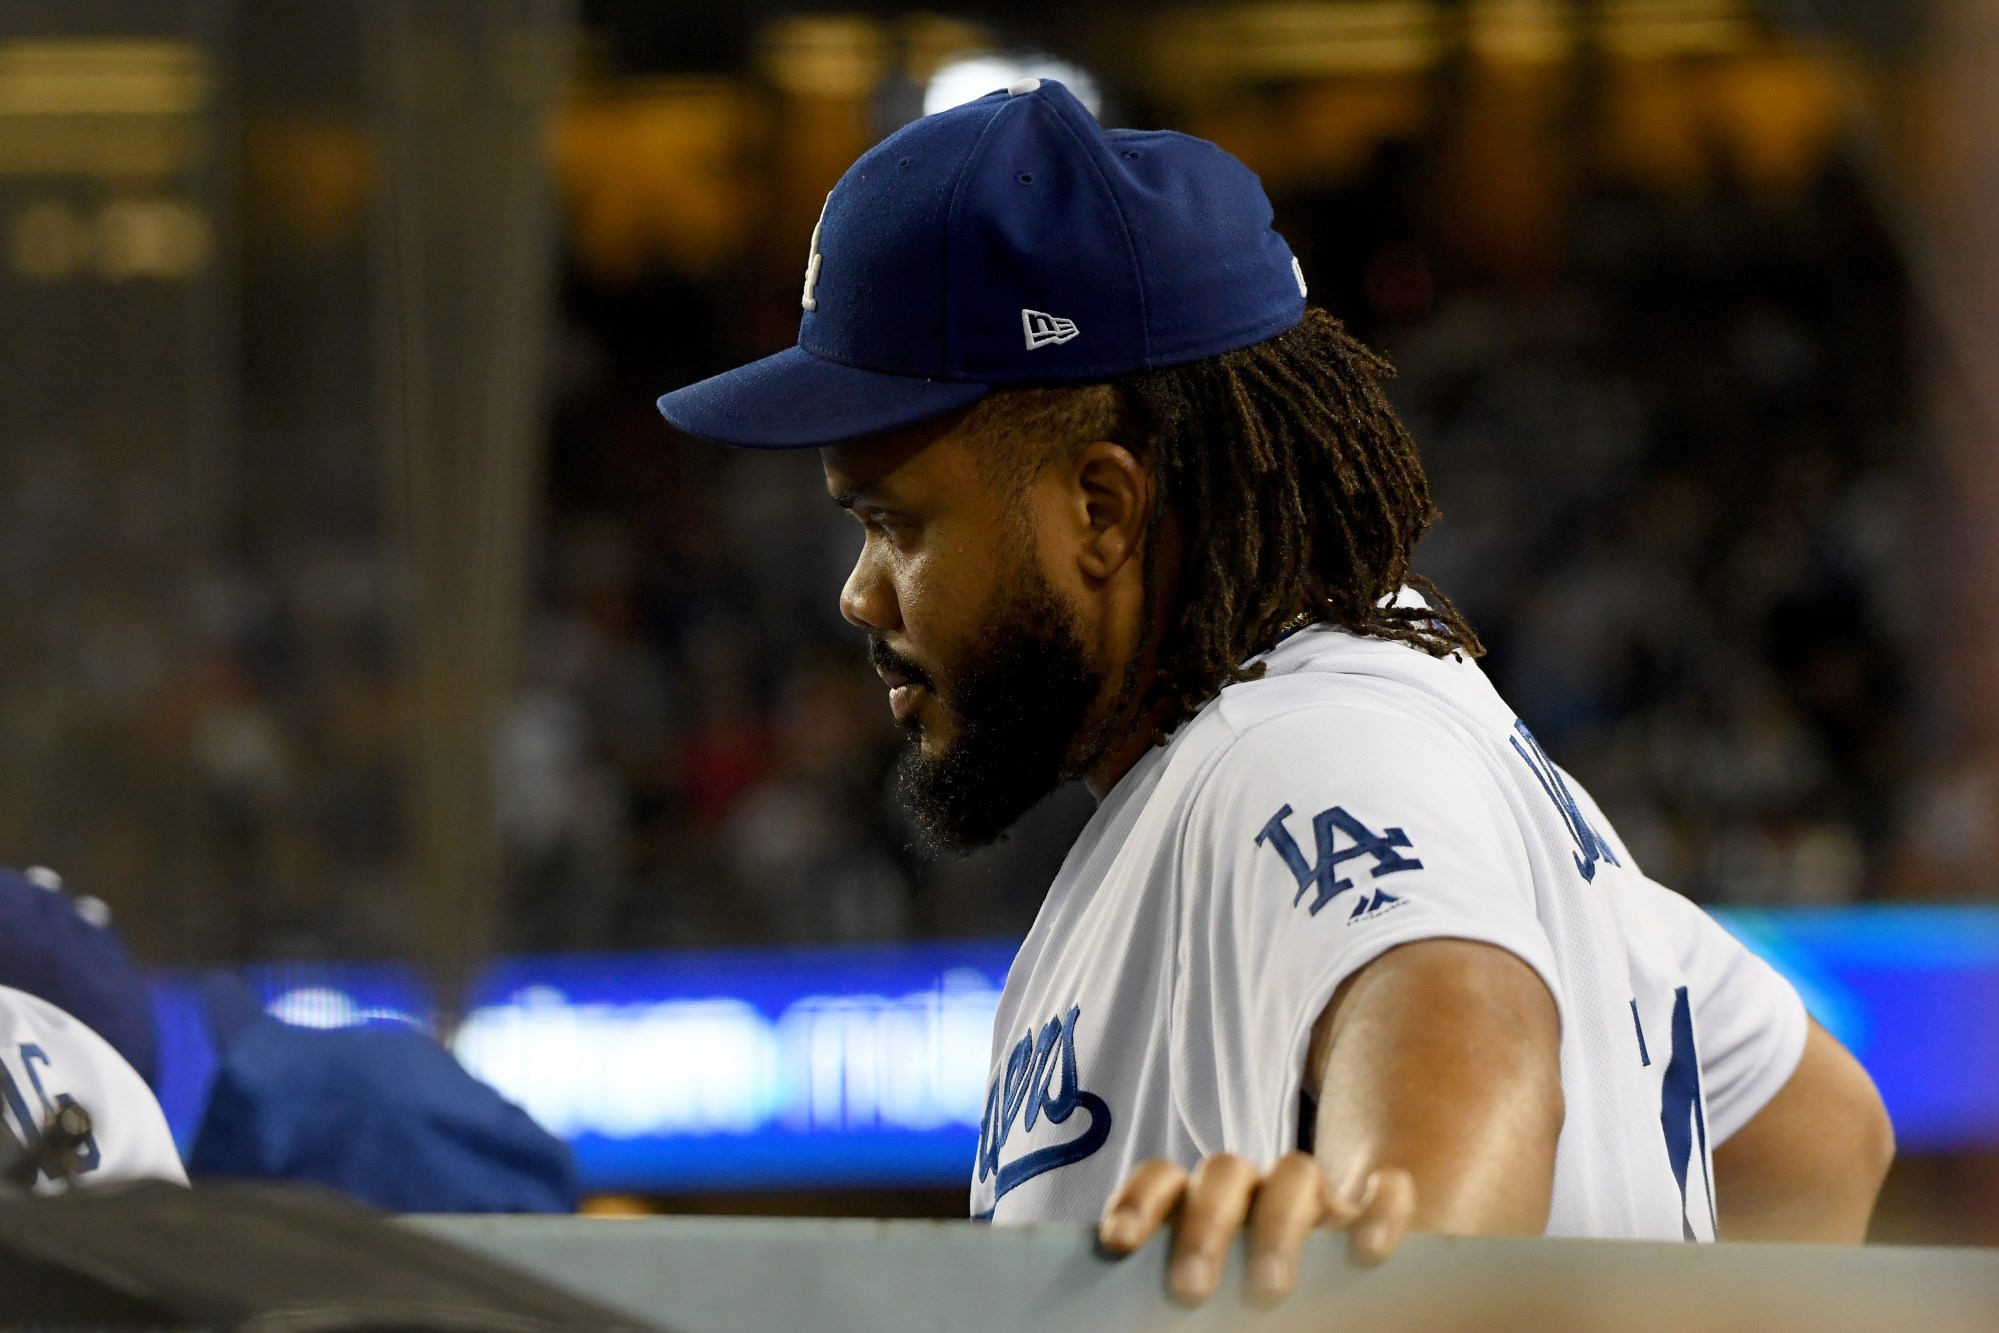 Kenley Jansen of the Los Angeles Dodgers looks on from the dugout during the ninth inning against the Boston Red Sox in Game Five of the 2018 World Series at Dodger Stadium on Oct. 28, 2018 in Los Angeles. (Harry How/Getty Images)